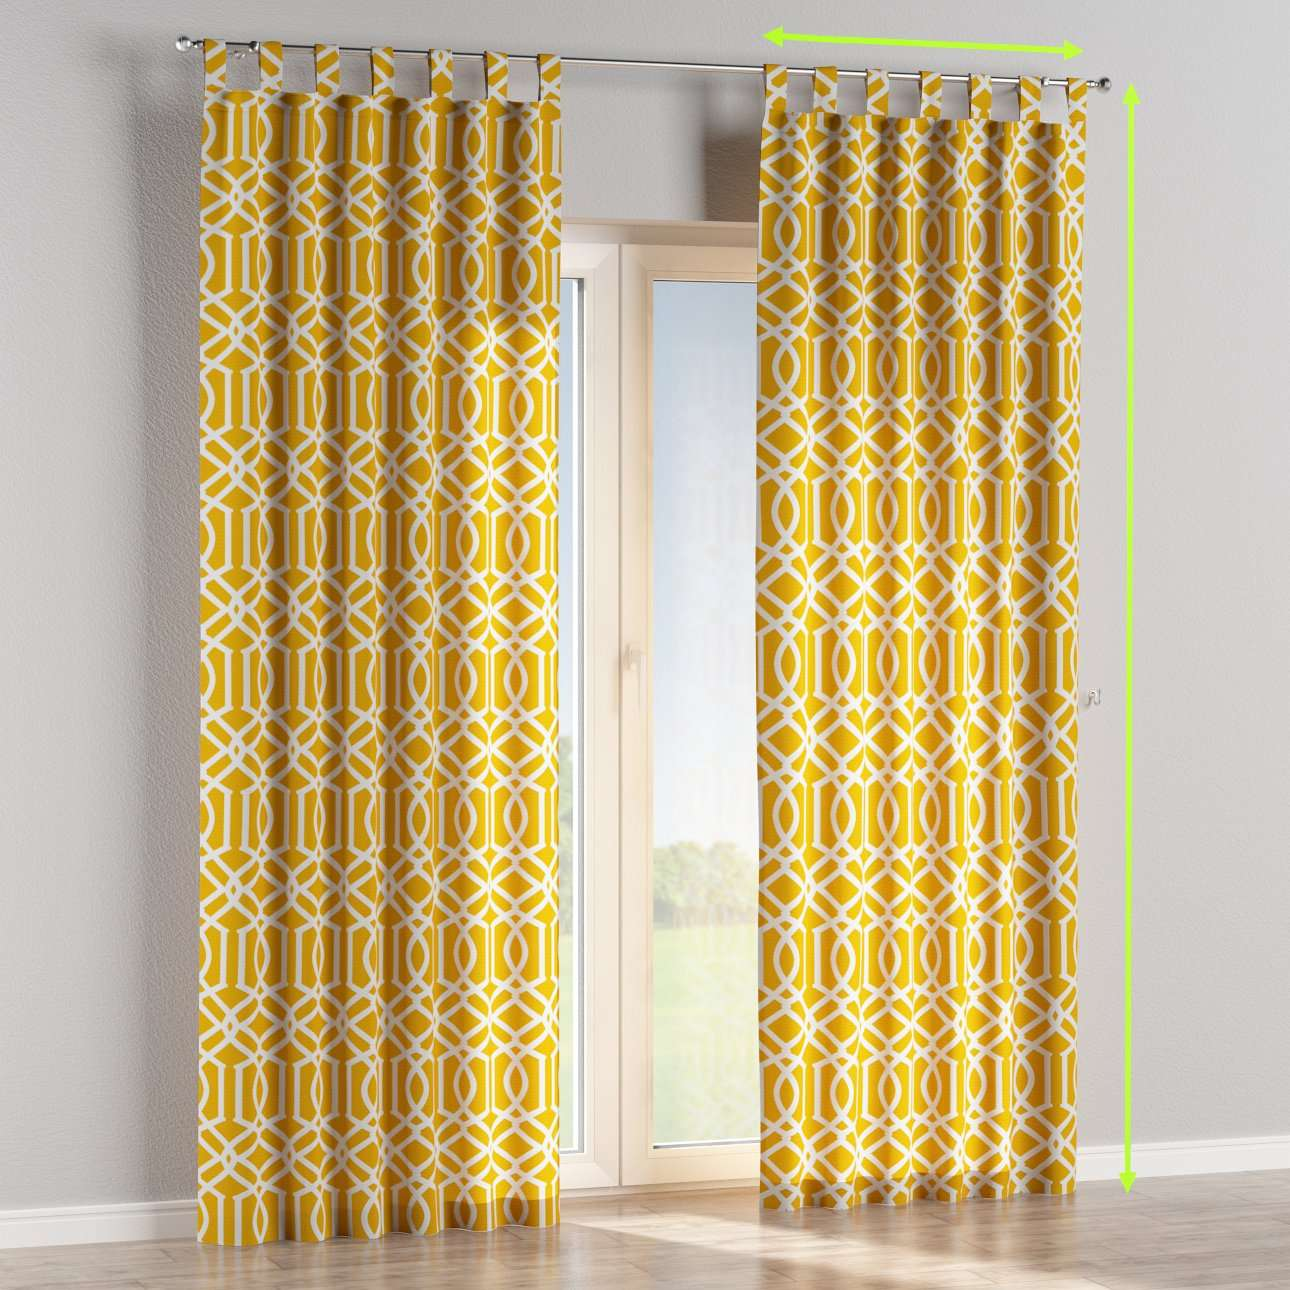 Tab top lined curtains in collection Comic Book & Geo Prints, fabric: 135-09